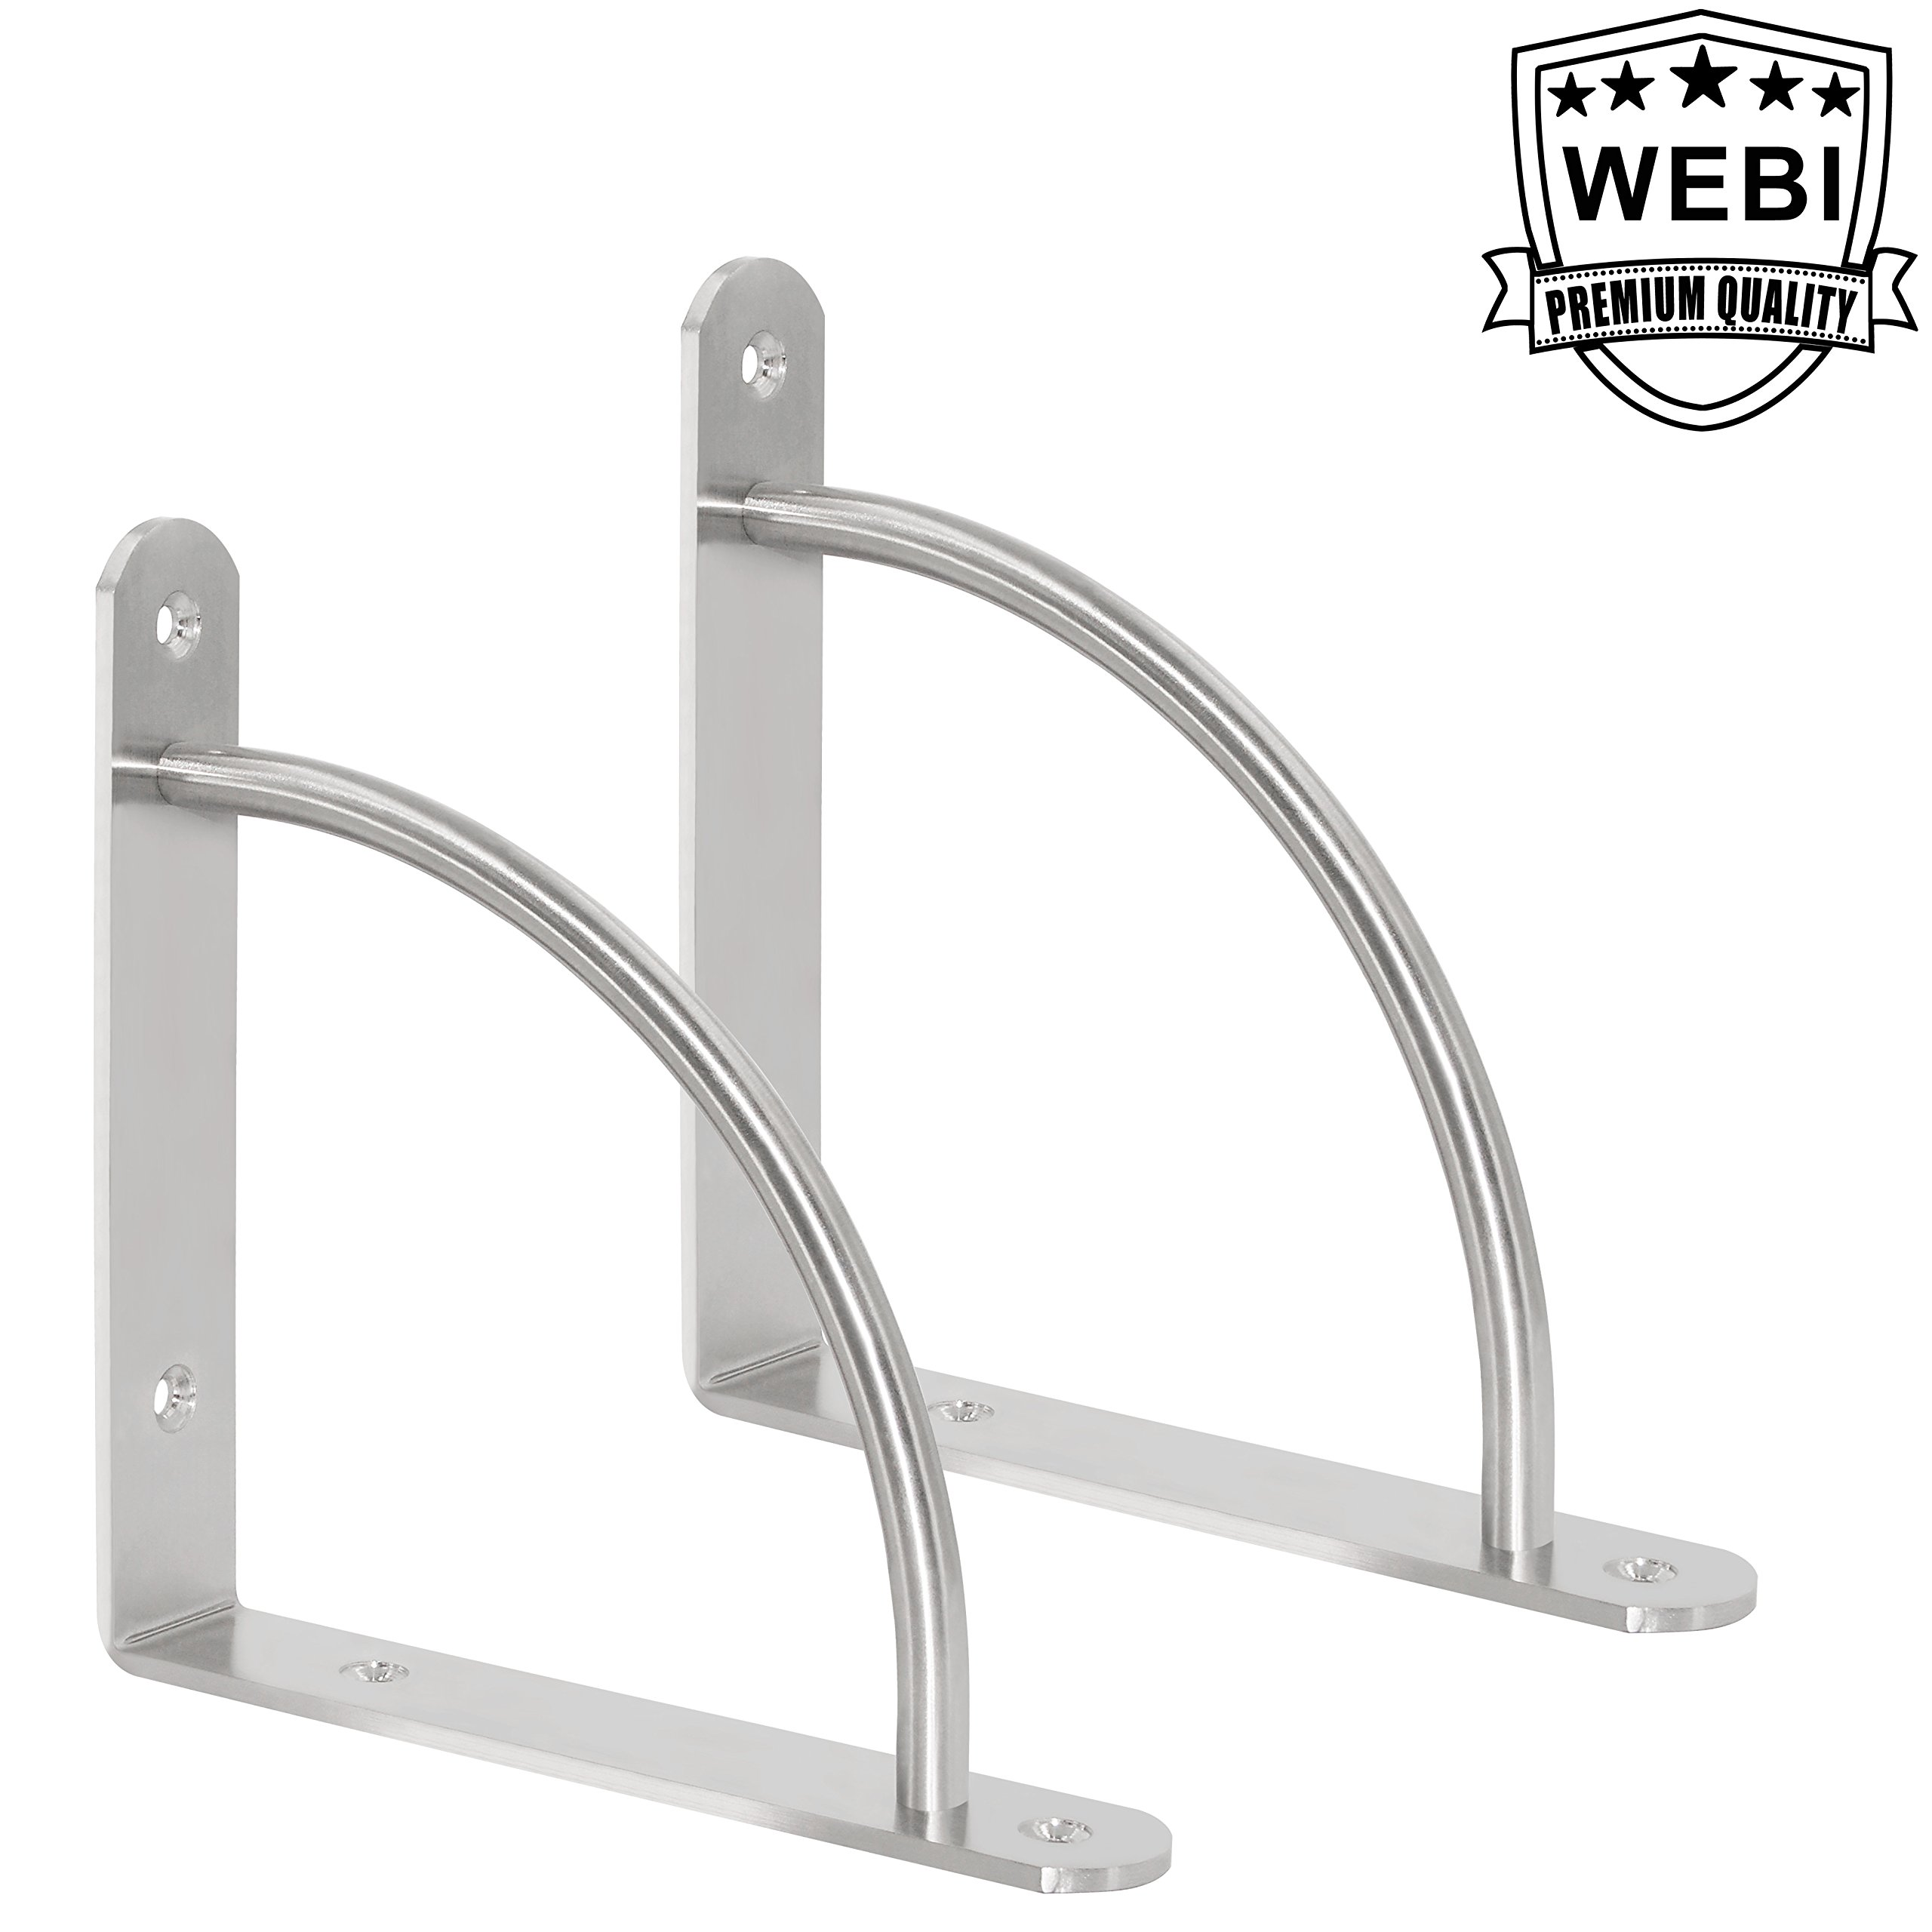 WEBI Heavy Duty Stainless Steel Corner Braces, L Shaped Right Angle Brackets, Joint Fastener, Shelf Support, With Screwed Arc Supporting Leg, 2-Pack